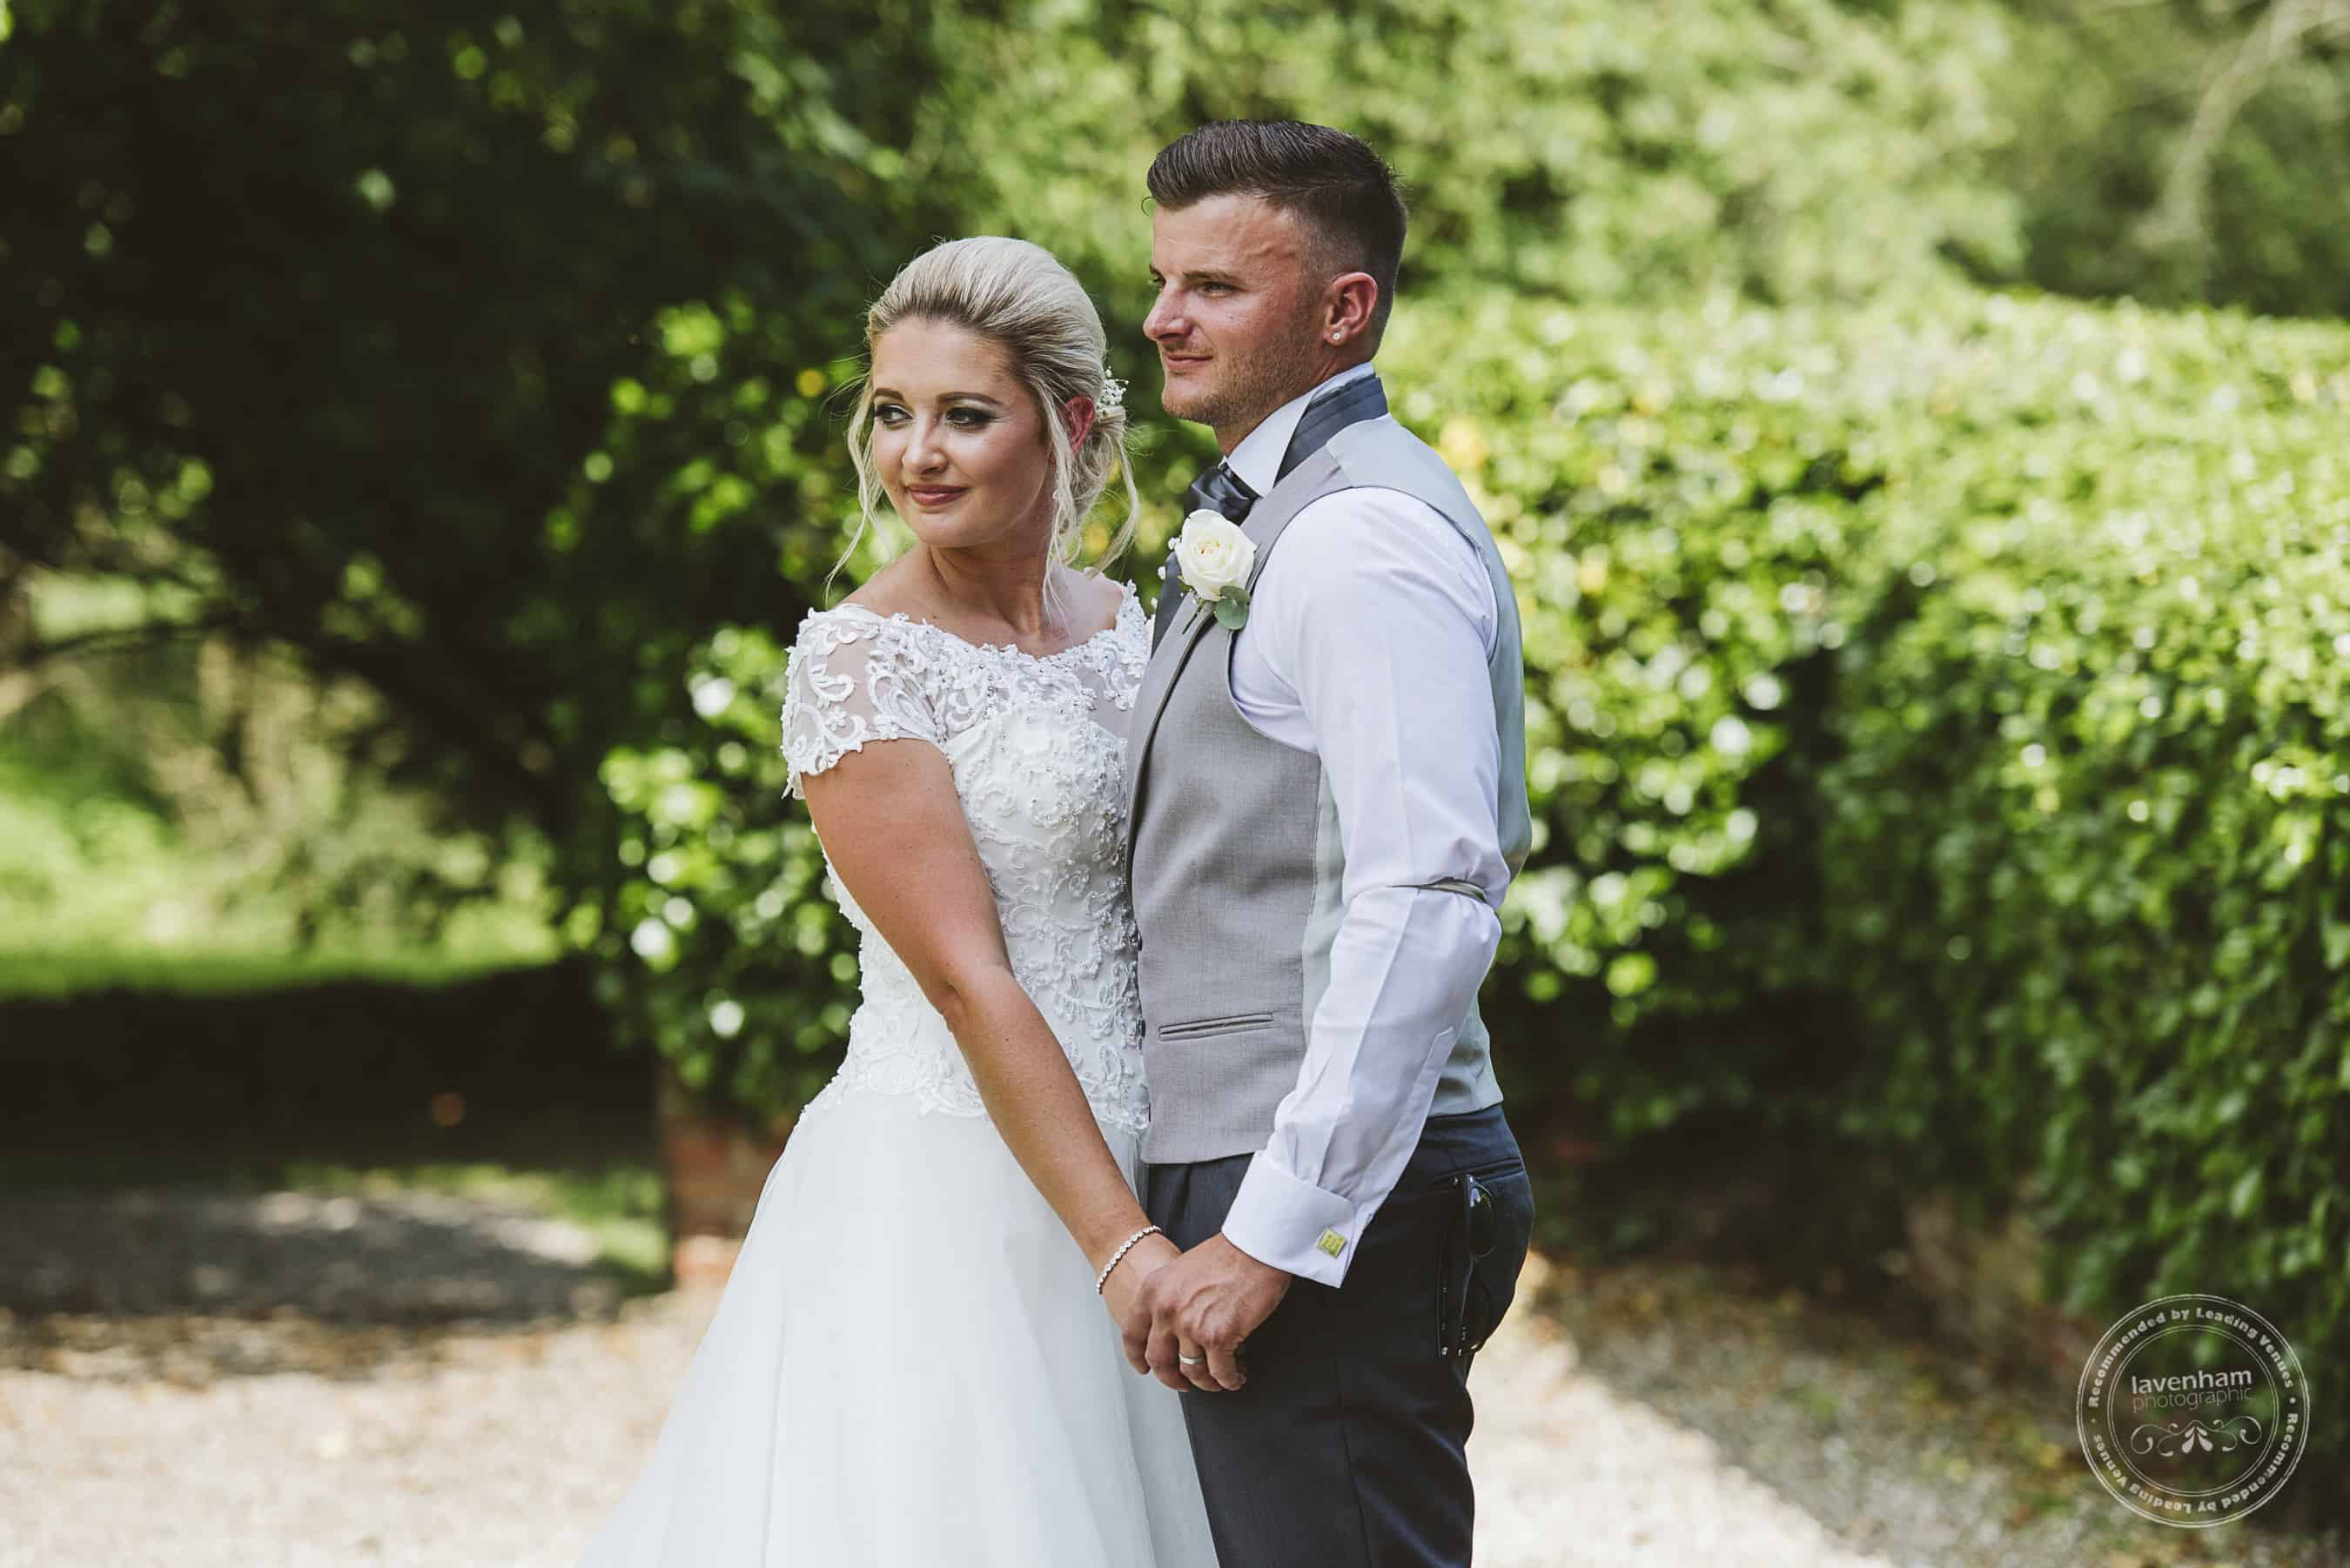 030618 Leez Priory Wedding Photography Lavenham Photographic 065